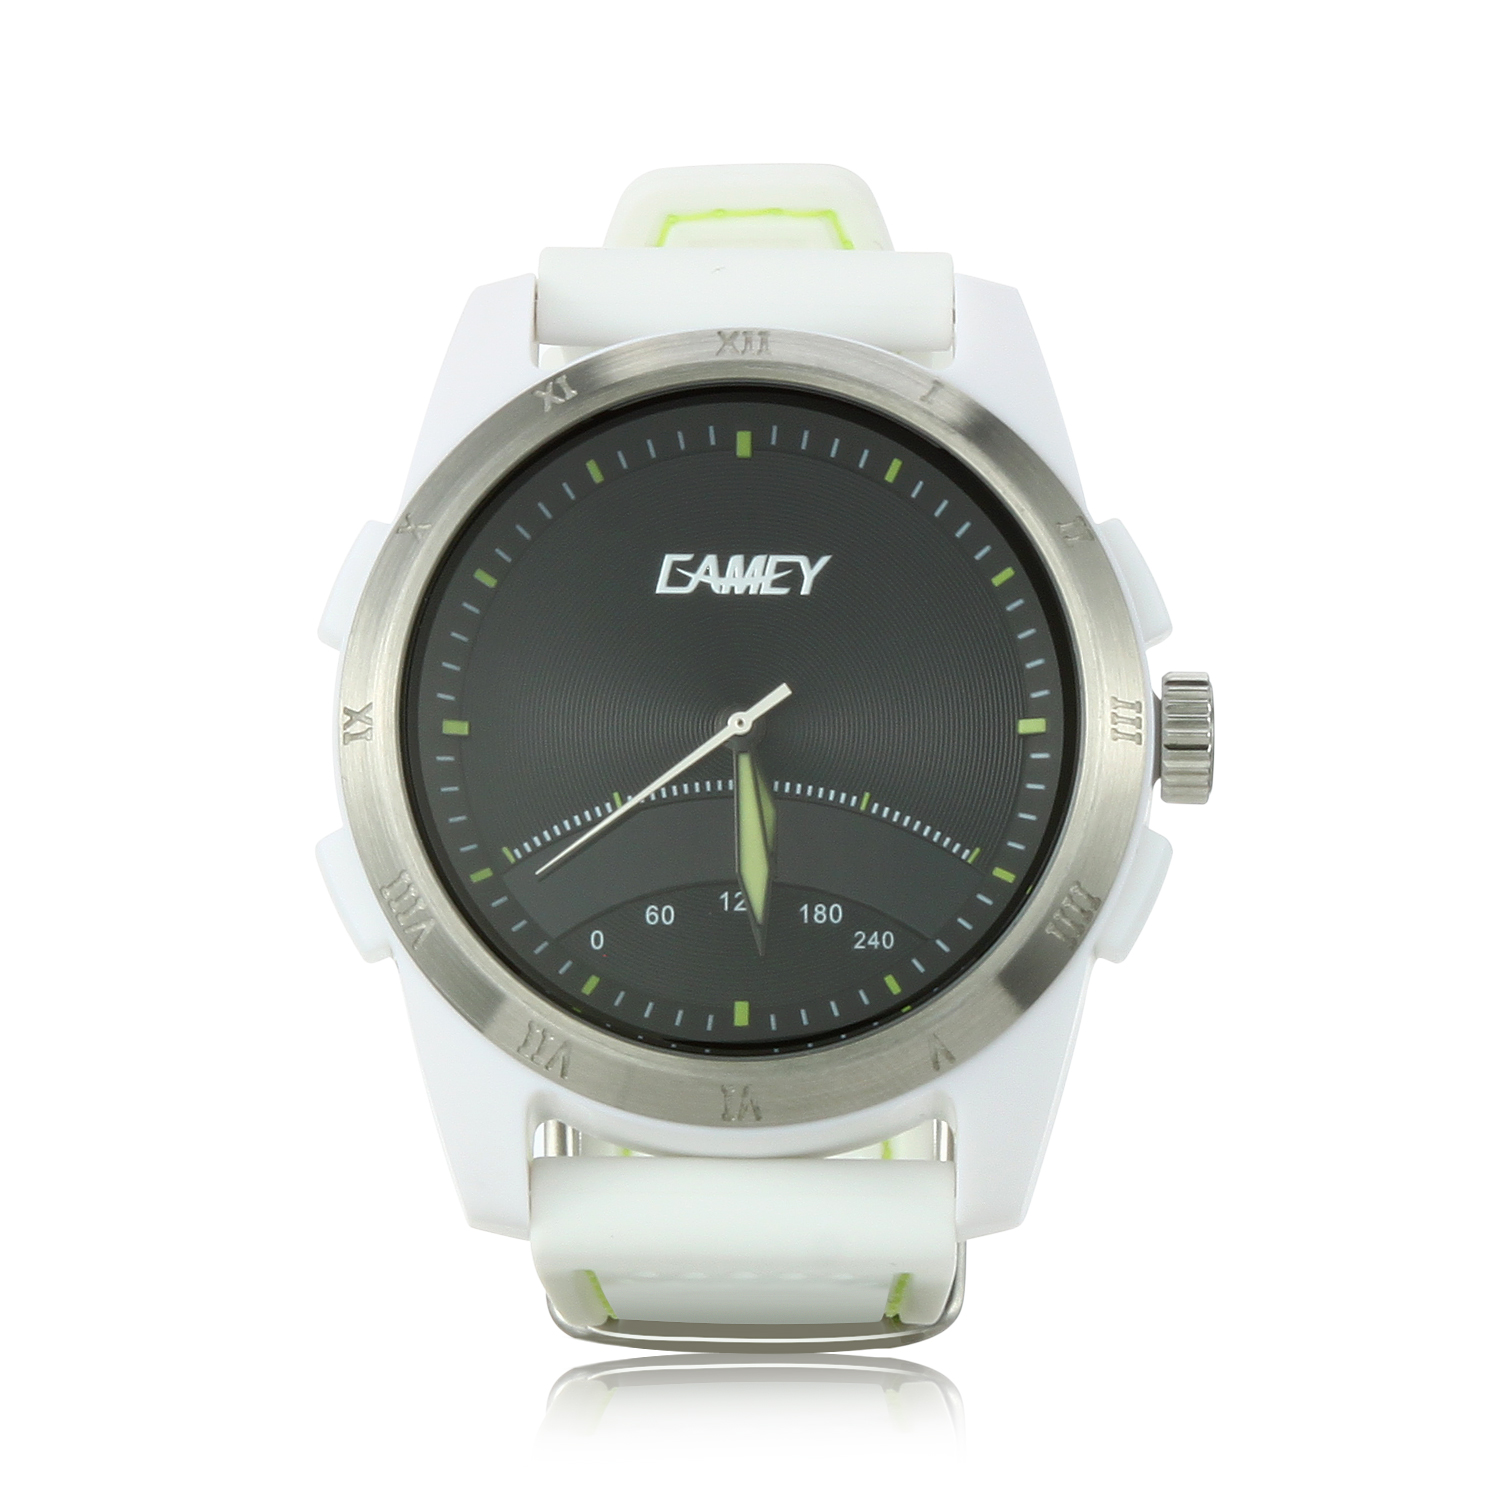 EAMEY Unik 2 Smart Sports Watch 5ATM Dual Movement Dual Battery for Android iOS White